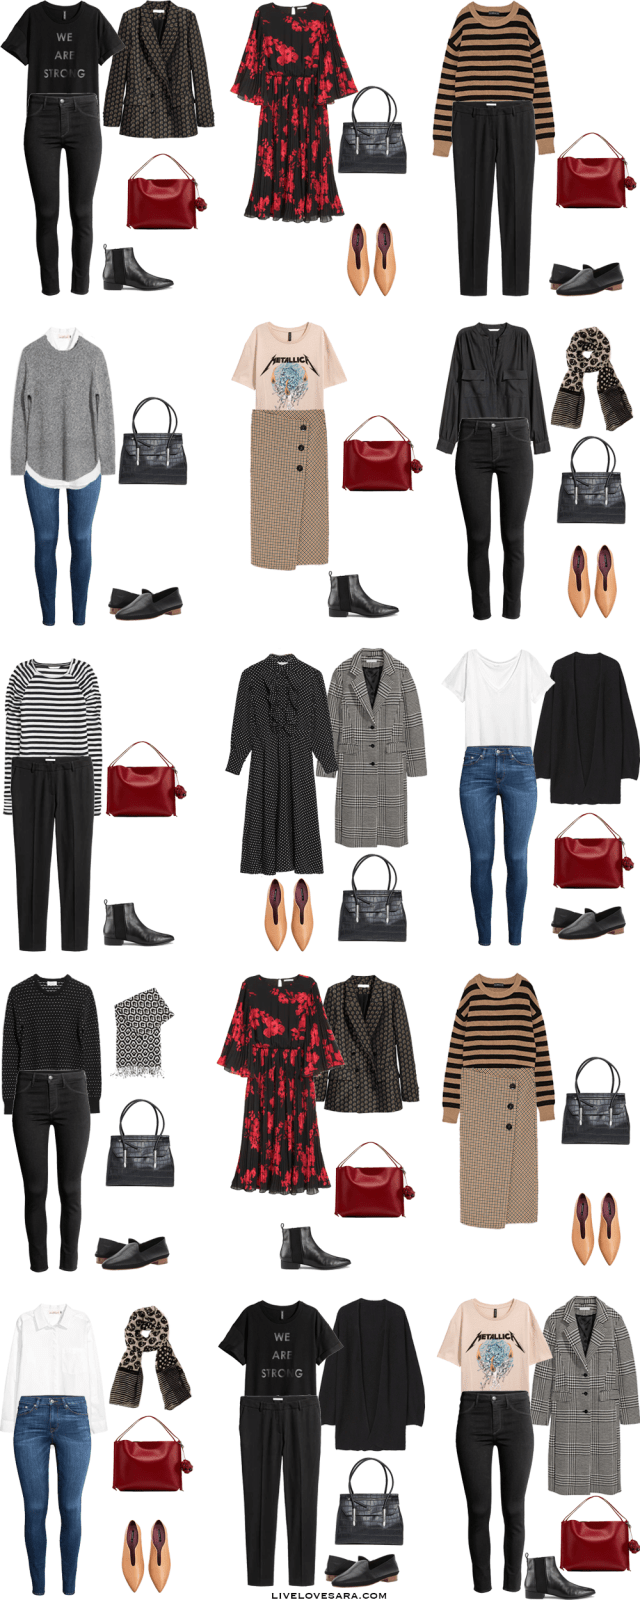 Personal and Work Capsule Wardrobe Outfit Options 1-15 via livelovesara